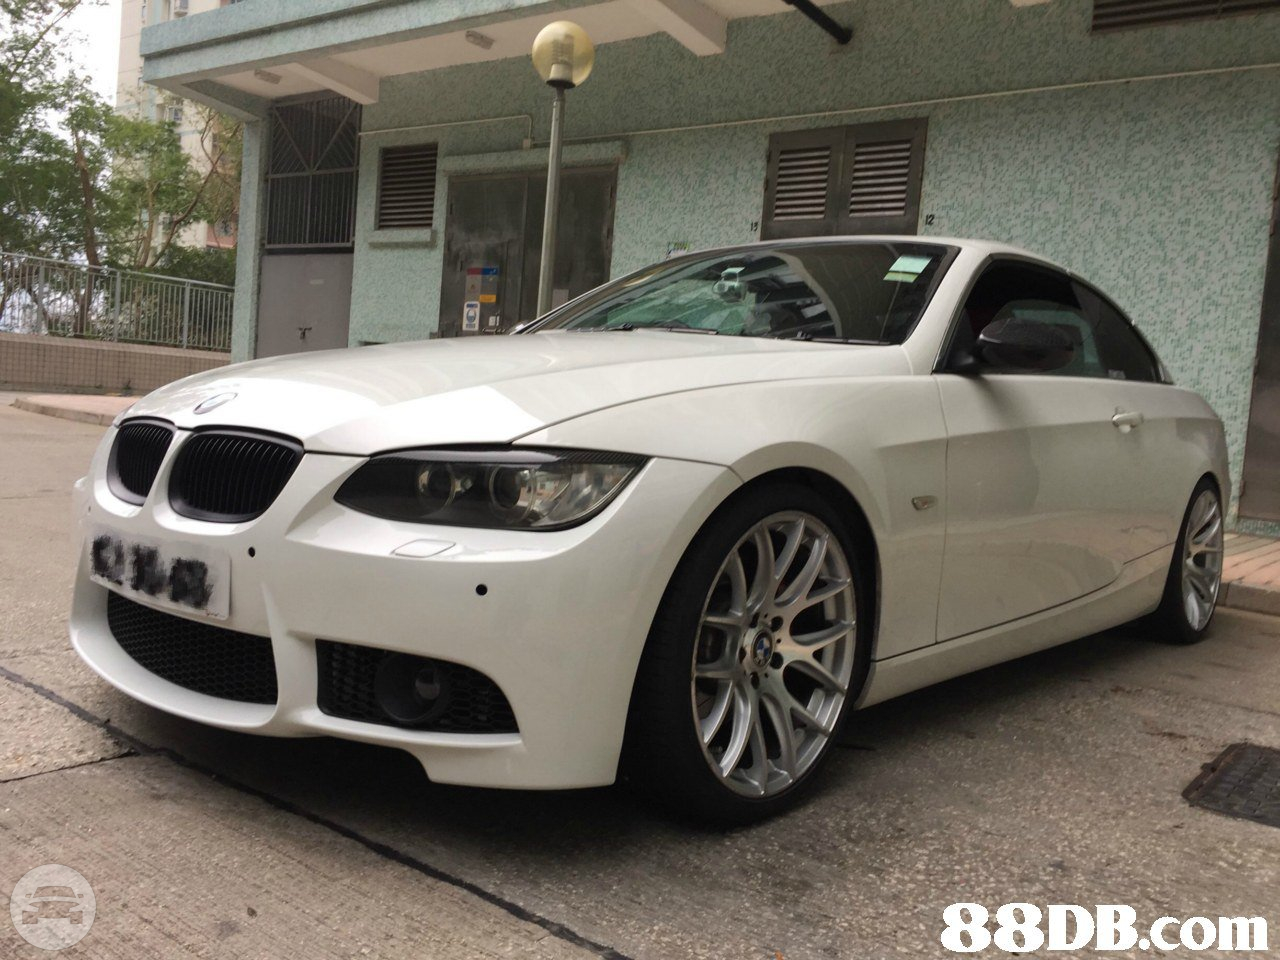 BMW 325i Sedan  / Kowloon, Hong Kong   / Hourly HKD 0.00